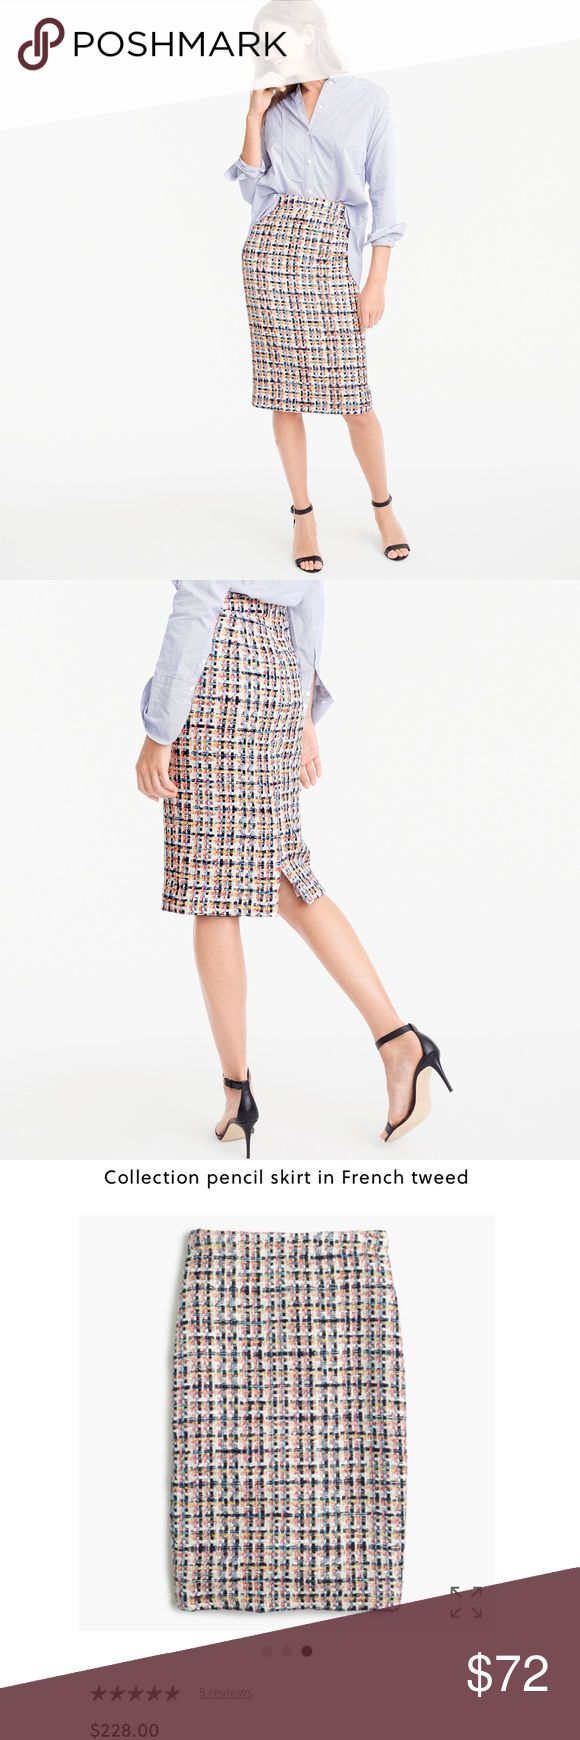 {J. Crew} Collection Pencil Skirt in French Tweed This pretty pencil skirt is crafted in metallic-flecked tweed from Jules Tournier, a French mill that's known for producing some of the finest fabrics in the world (est. 1865). There's also a matching lady jacket for even more amazing outfit potential.  Cotton/acrylic/polyamide/poly/other fibers. Dry clean. Import. Select stores. Item G2085. Condition: New without tags! J. Crew Skirts Pencil